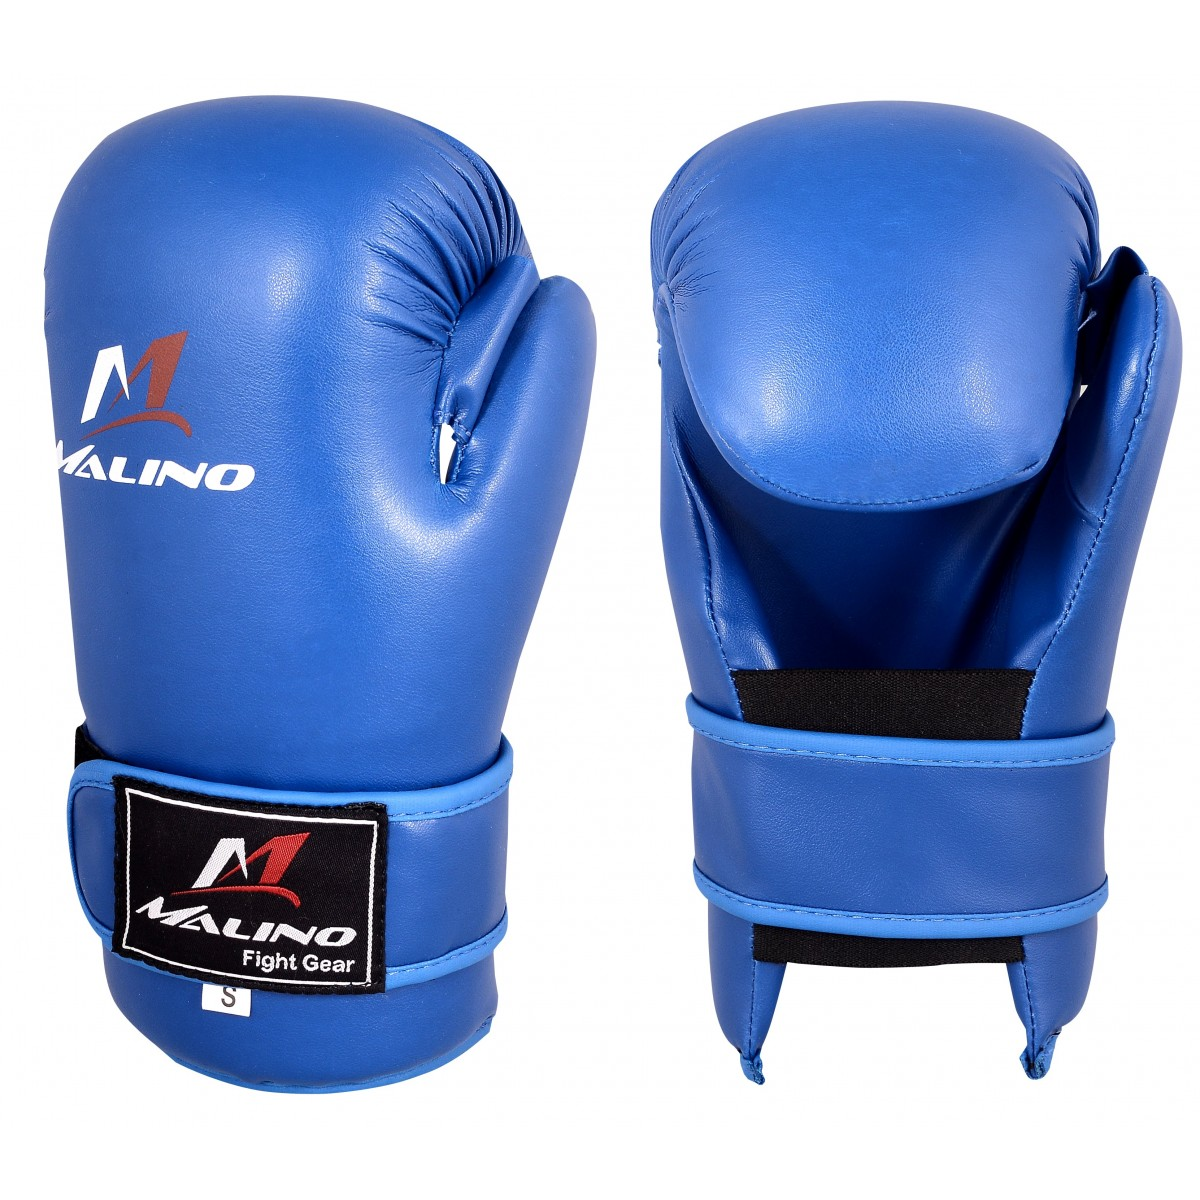 Malino Blue Karate Semi Mitt Without Thumb